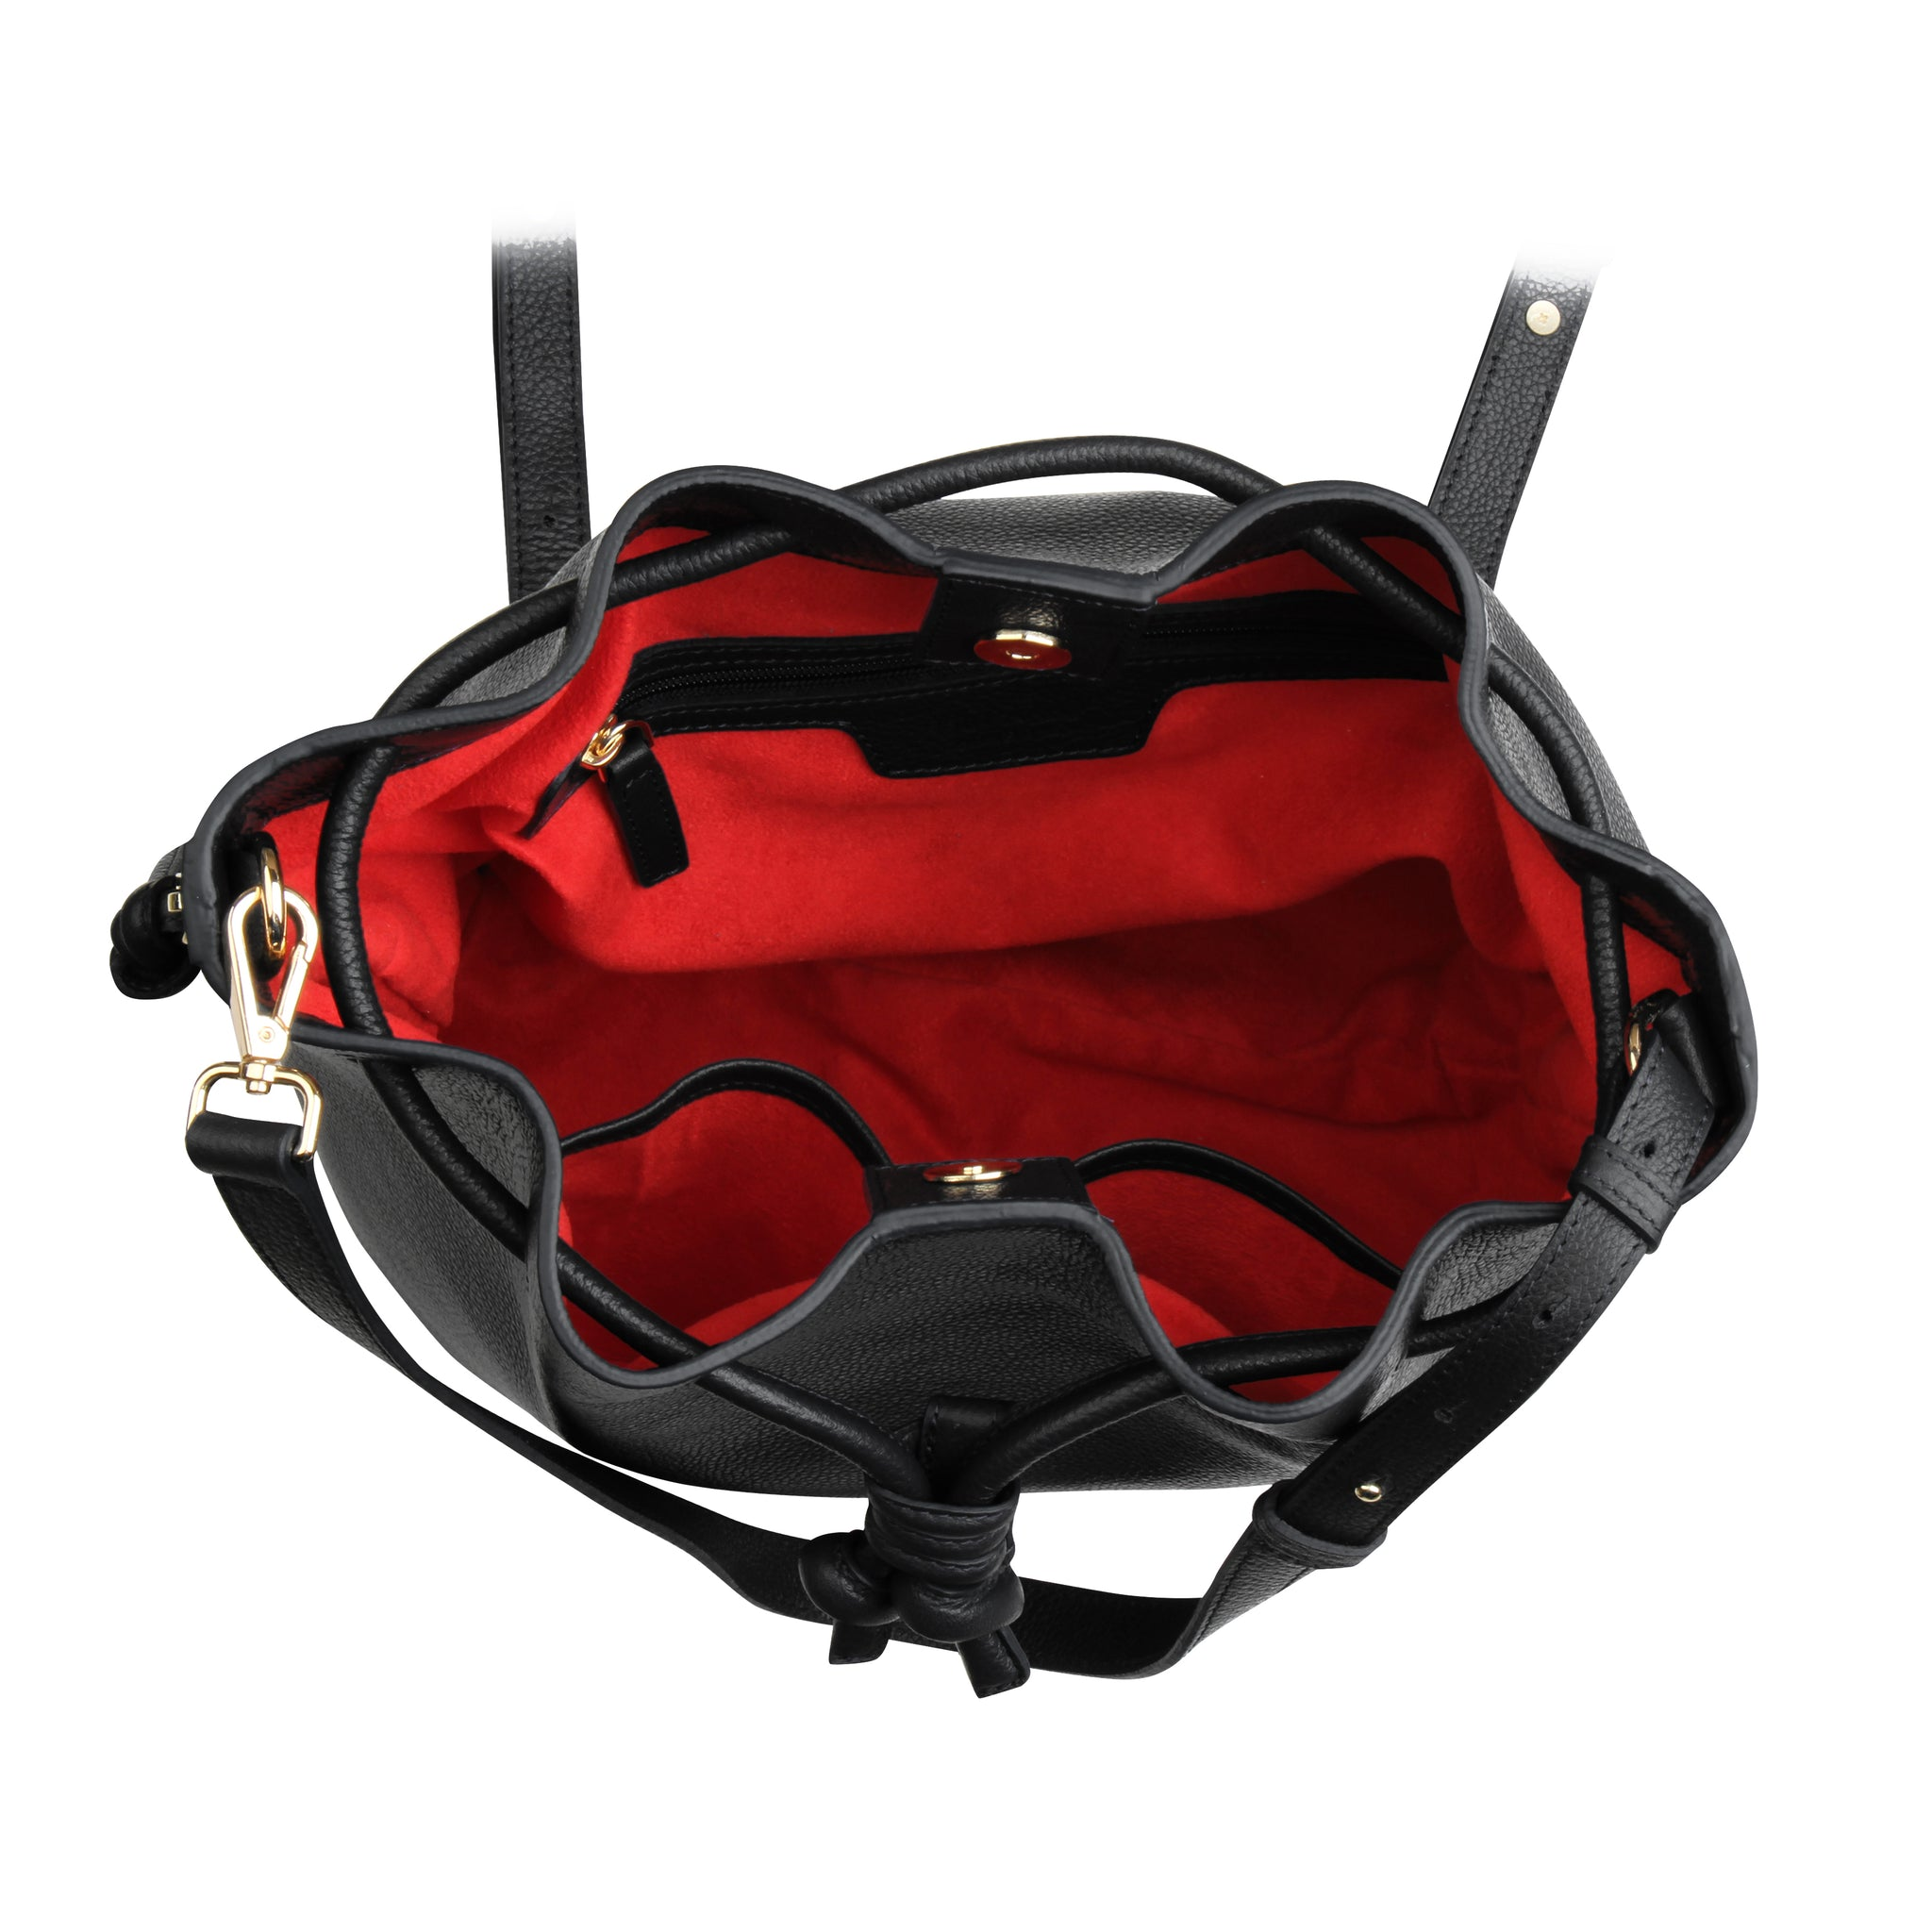 A convertible laptop size womens black leather backpack with red that could be used as a crossbody as well as a bucket bag, red interior image.